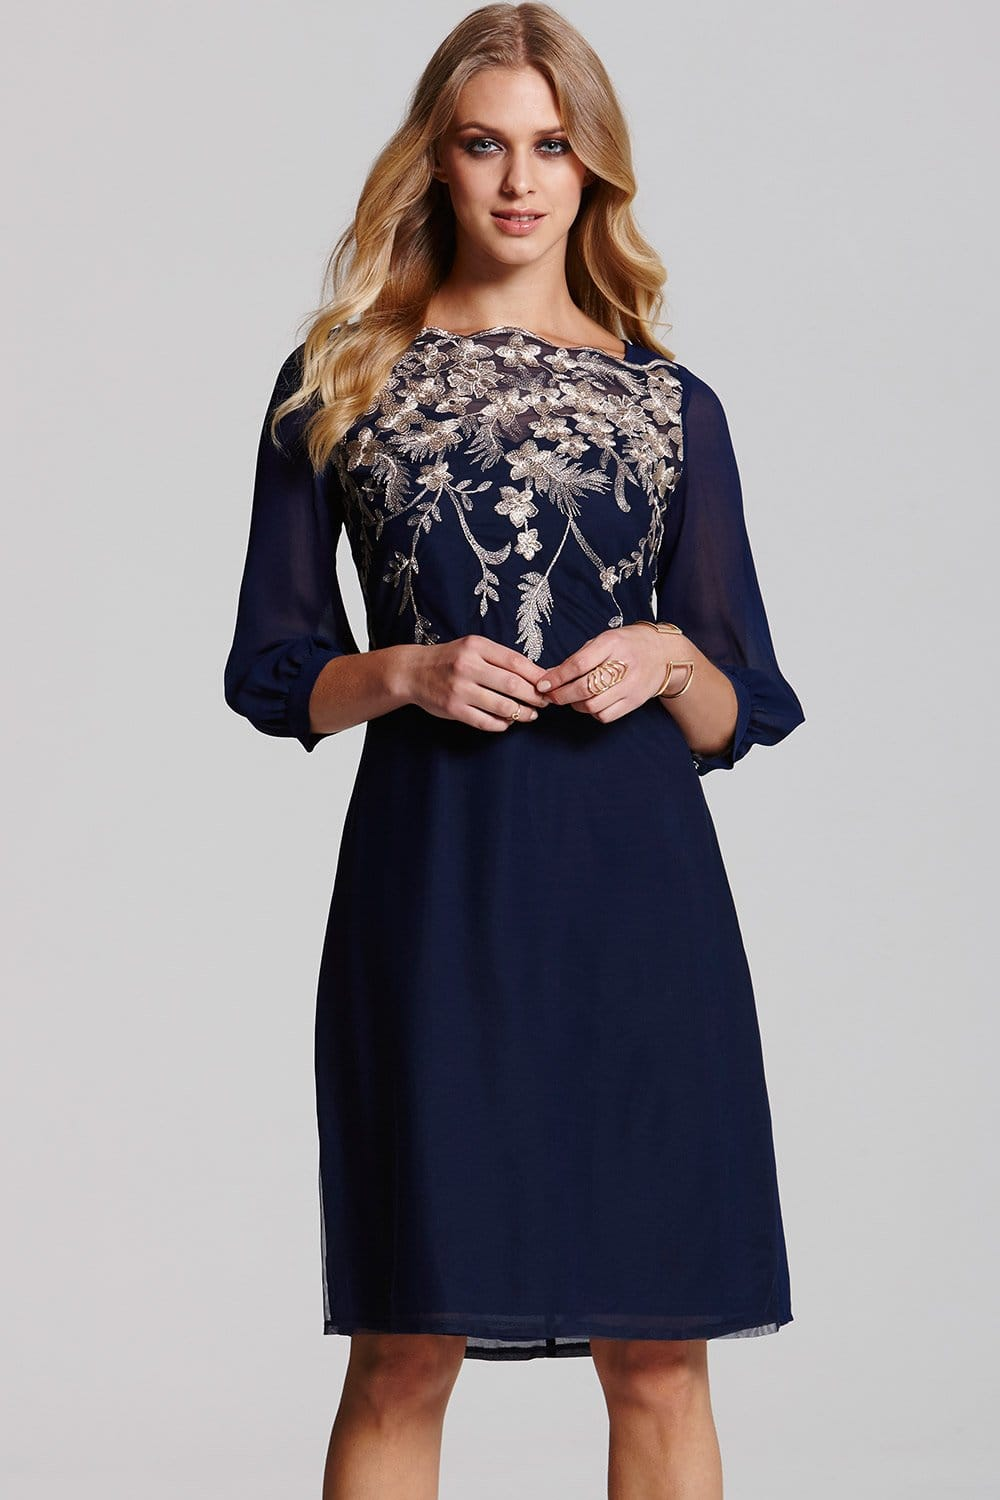 Navy And Gold Embroidered Tunic From Little Mistress Uk